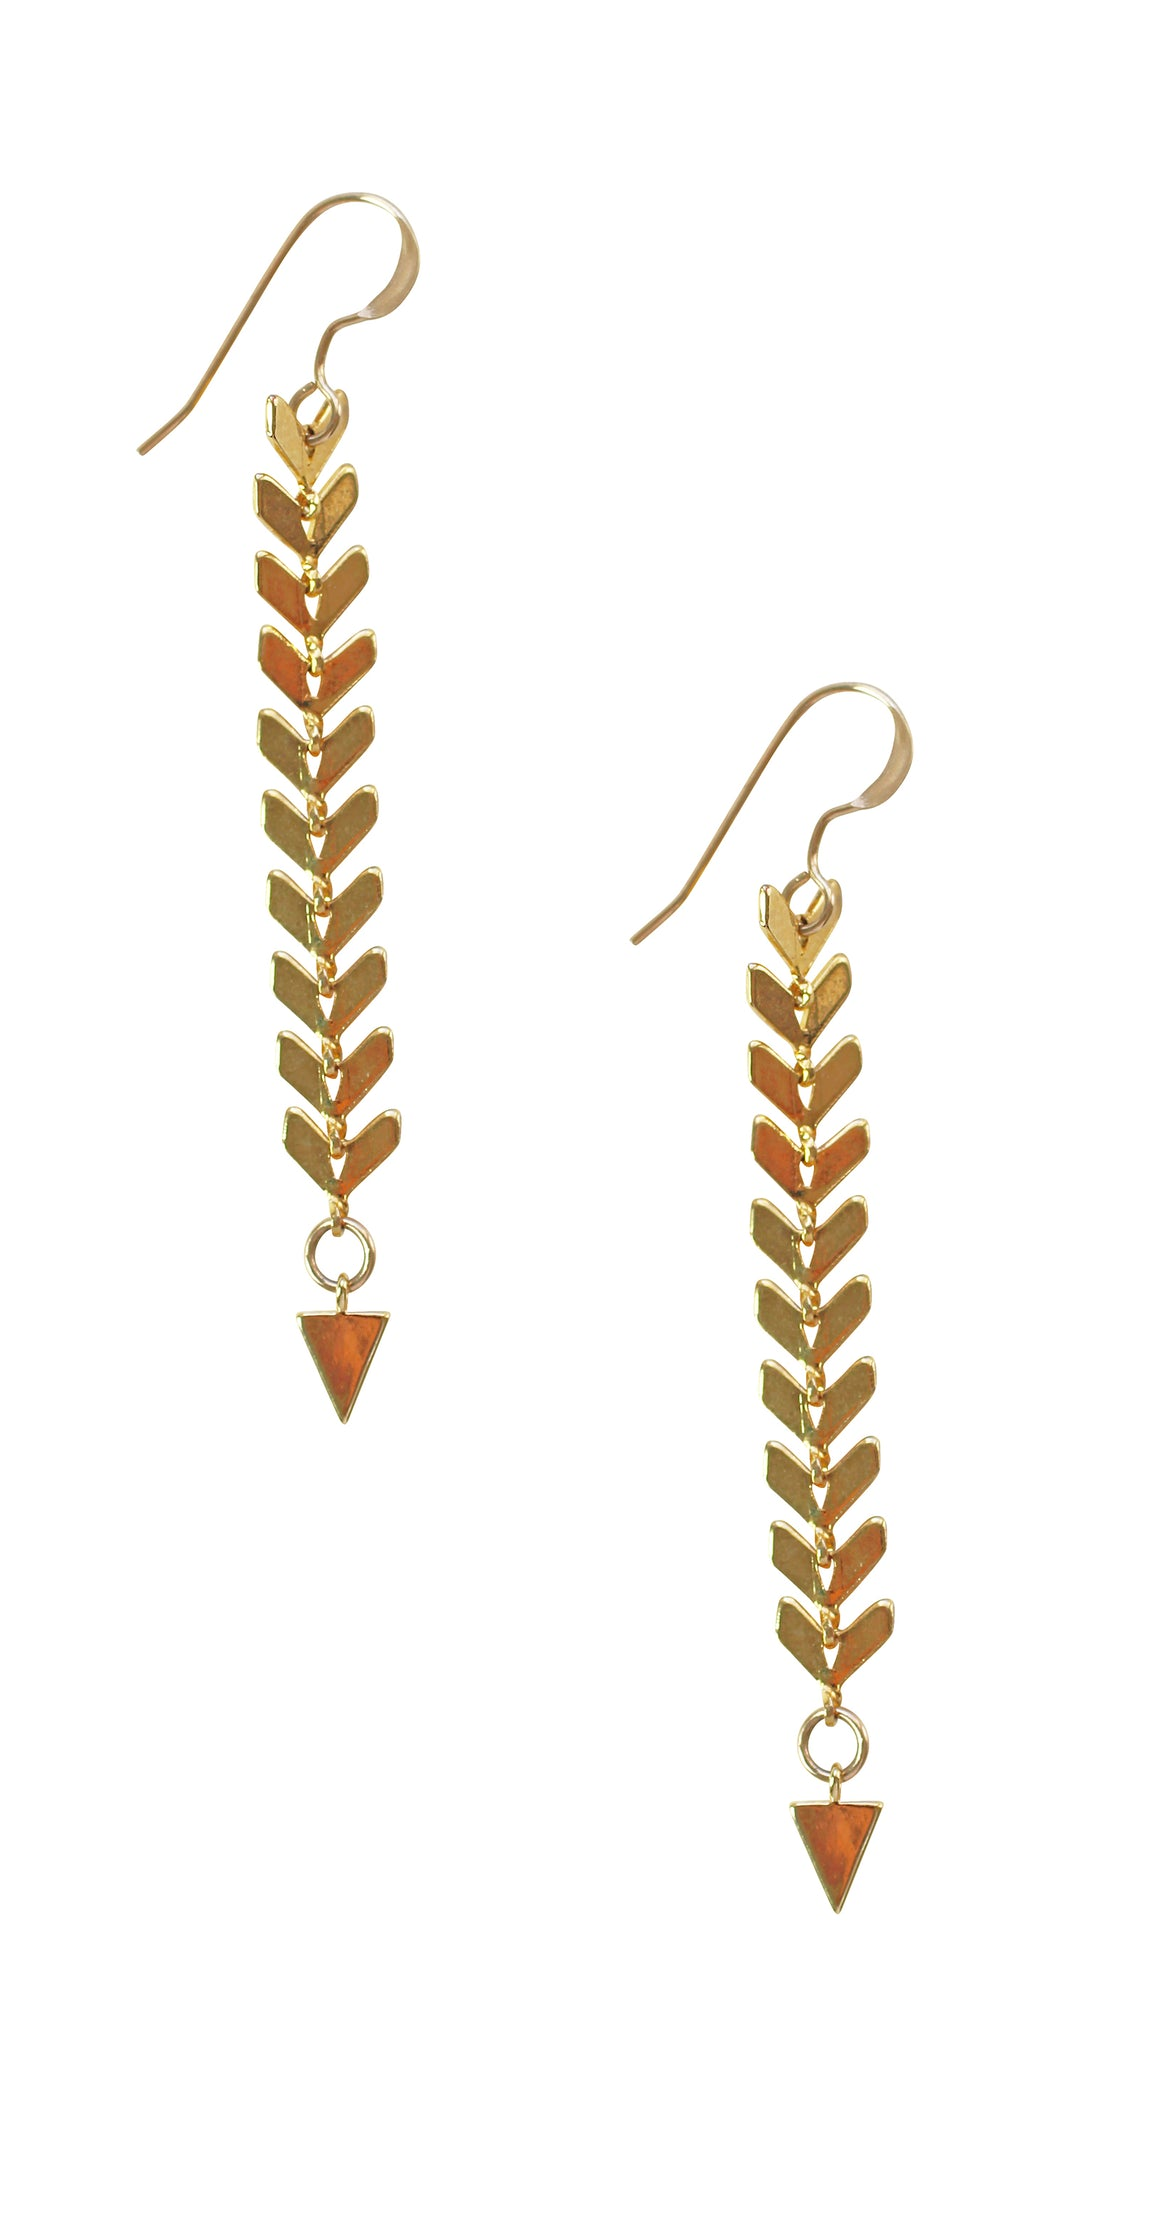 CJ earrings